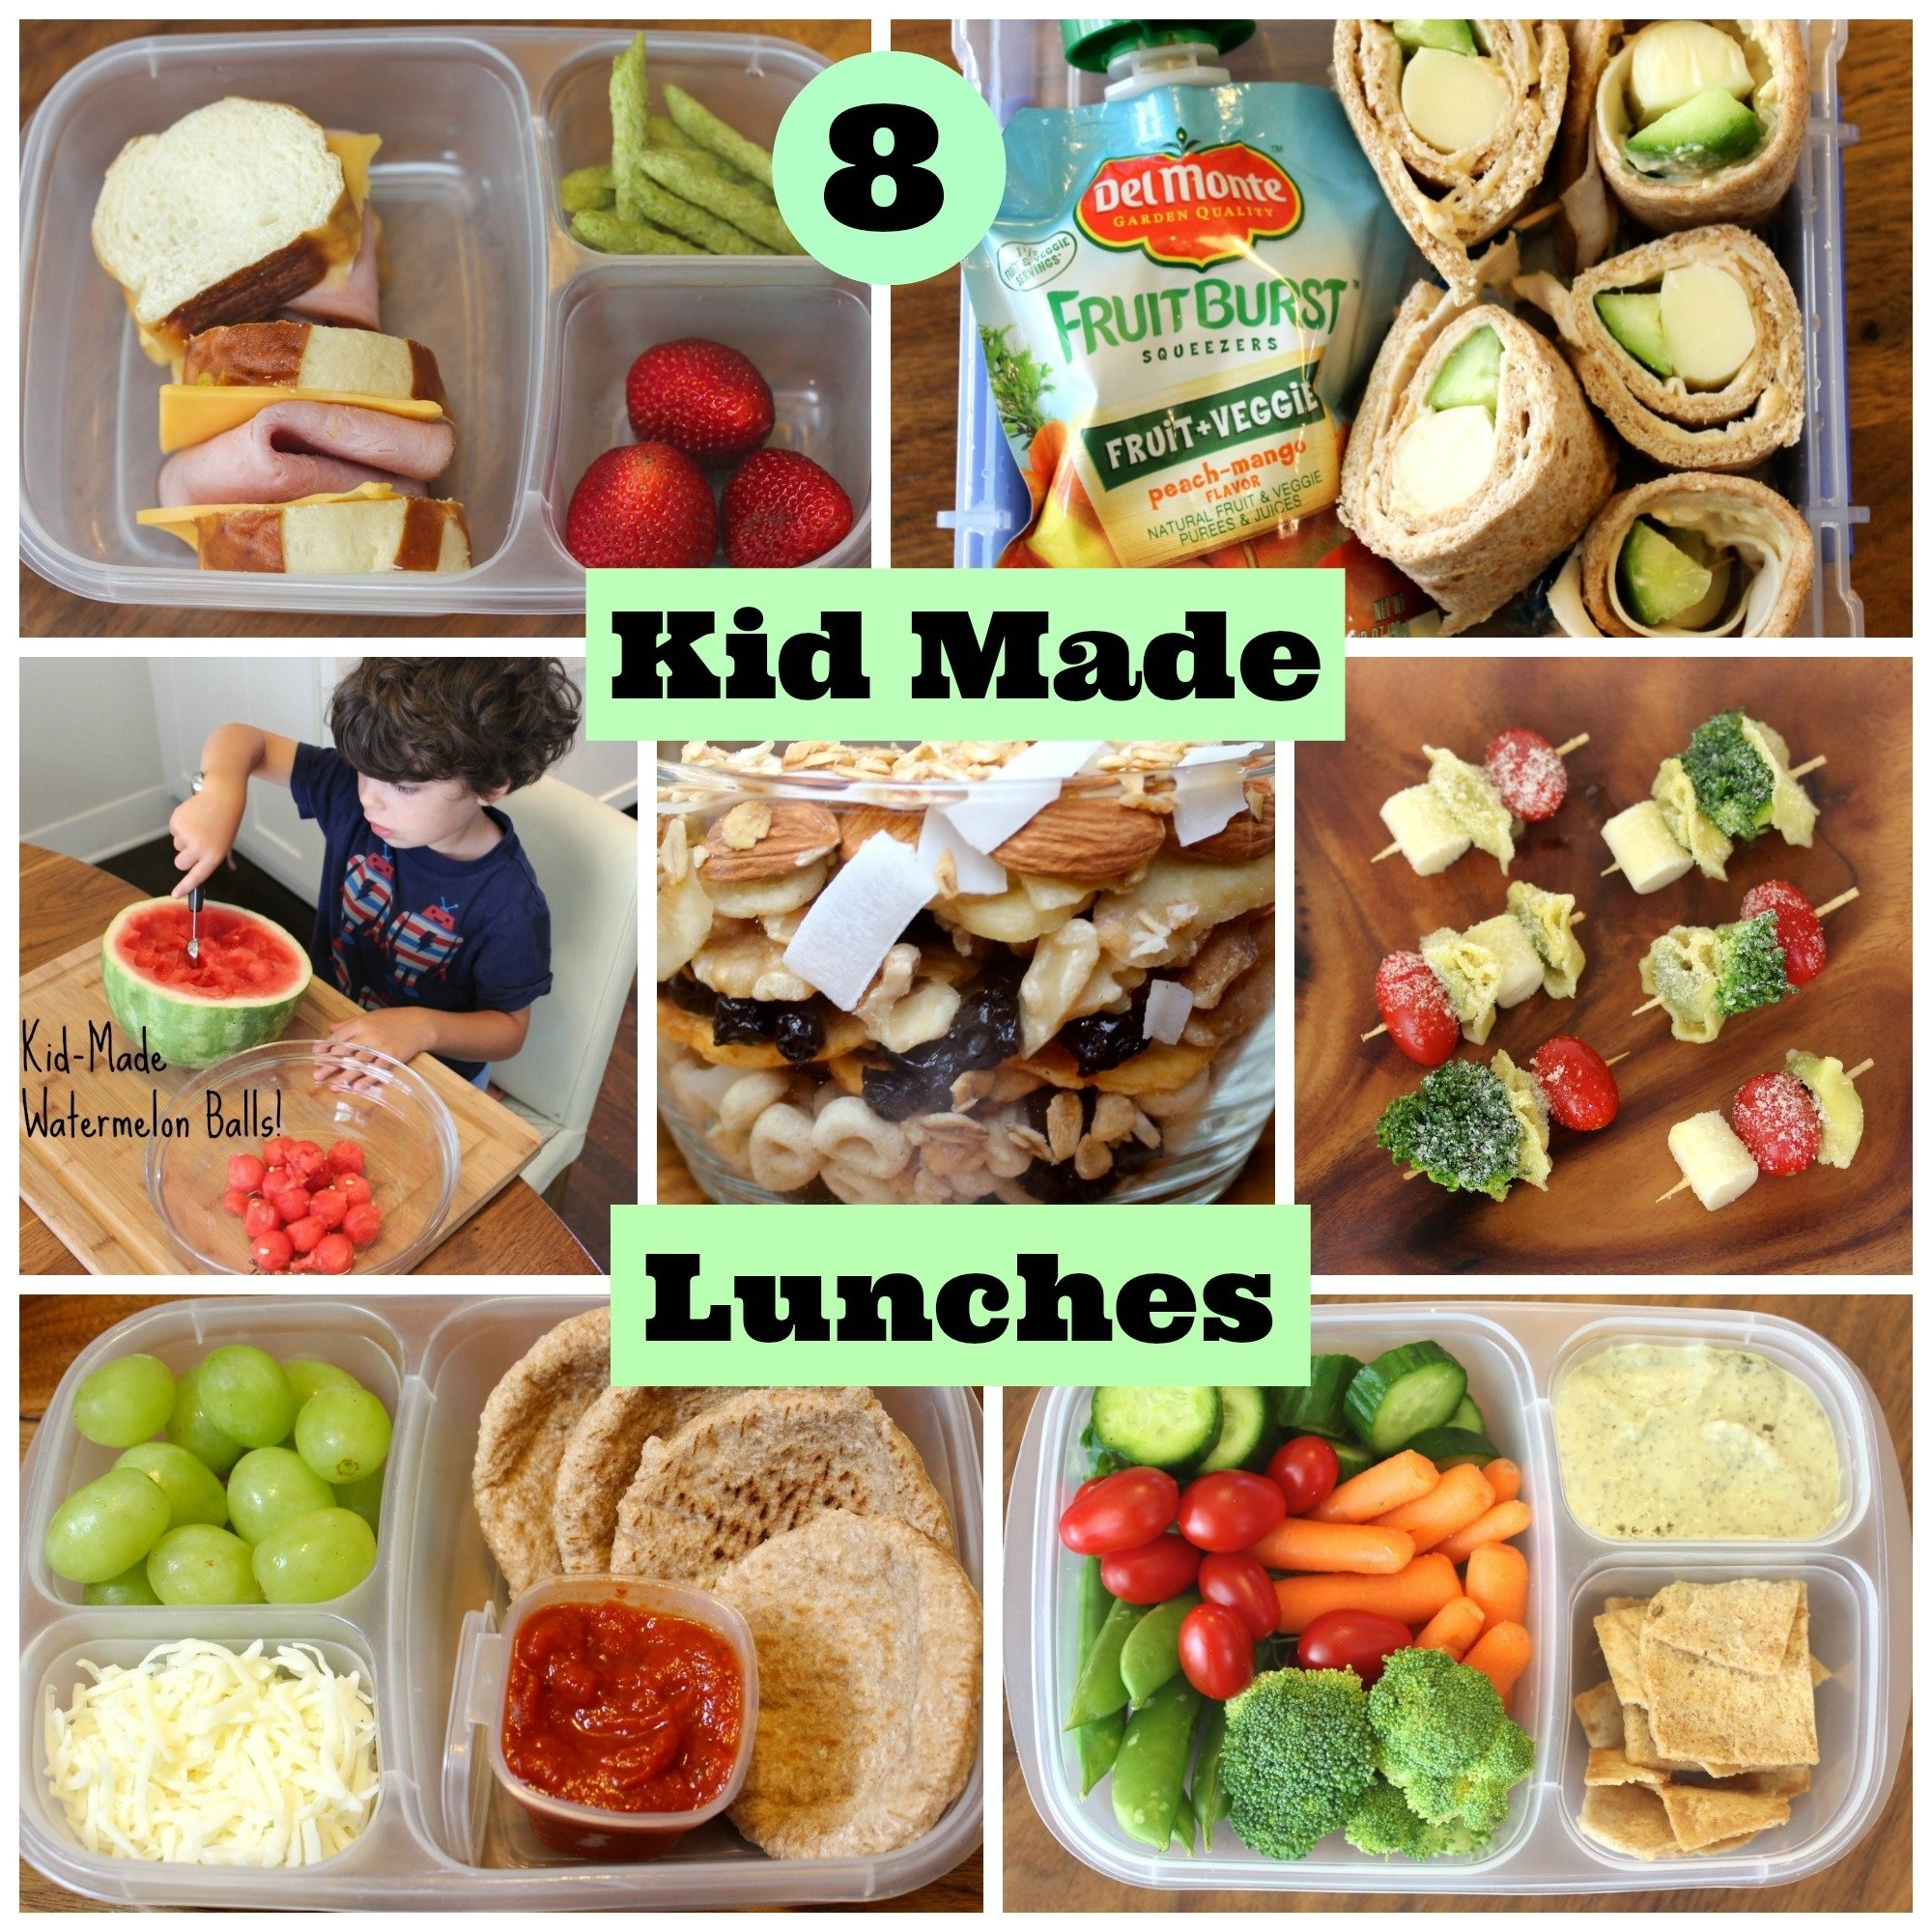 10 Most Popular Healthy Kid Lunch Ideas For School 4 healthy school lunches your kids can make themselves babble 15